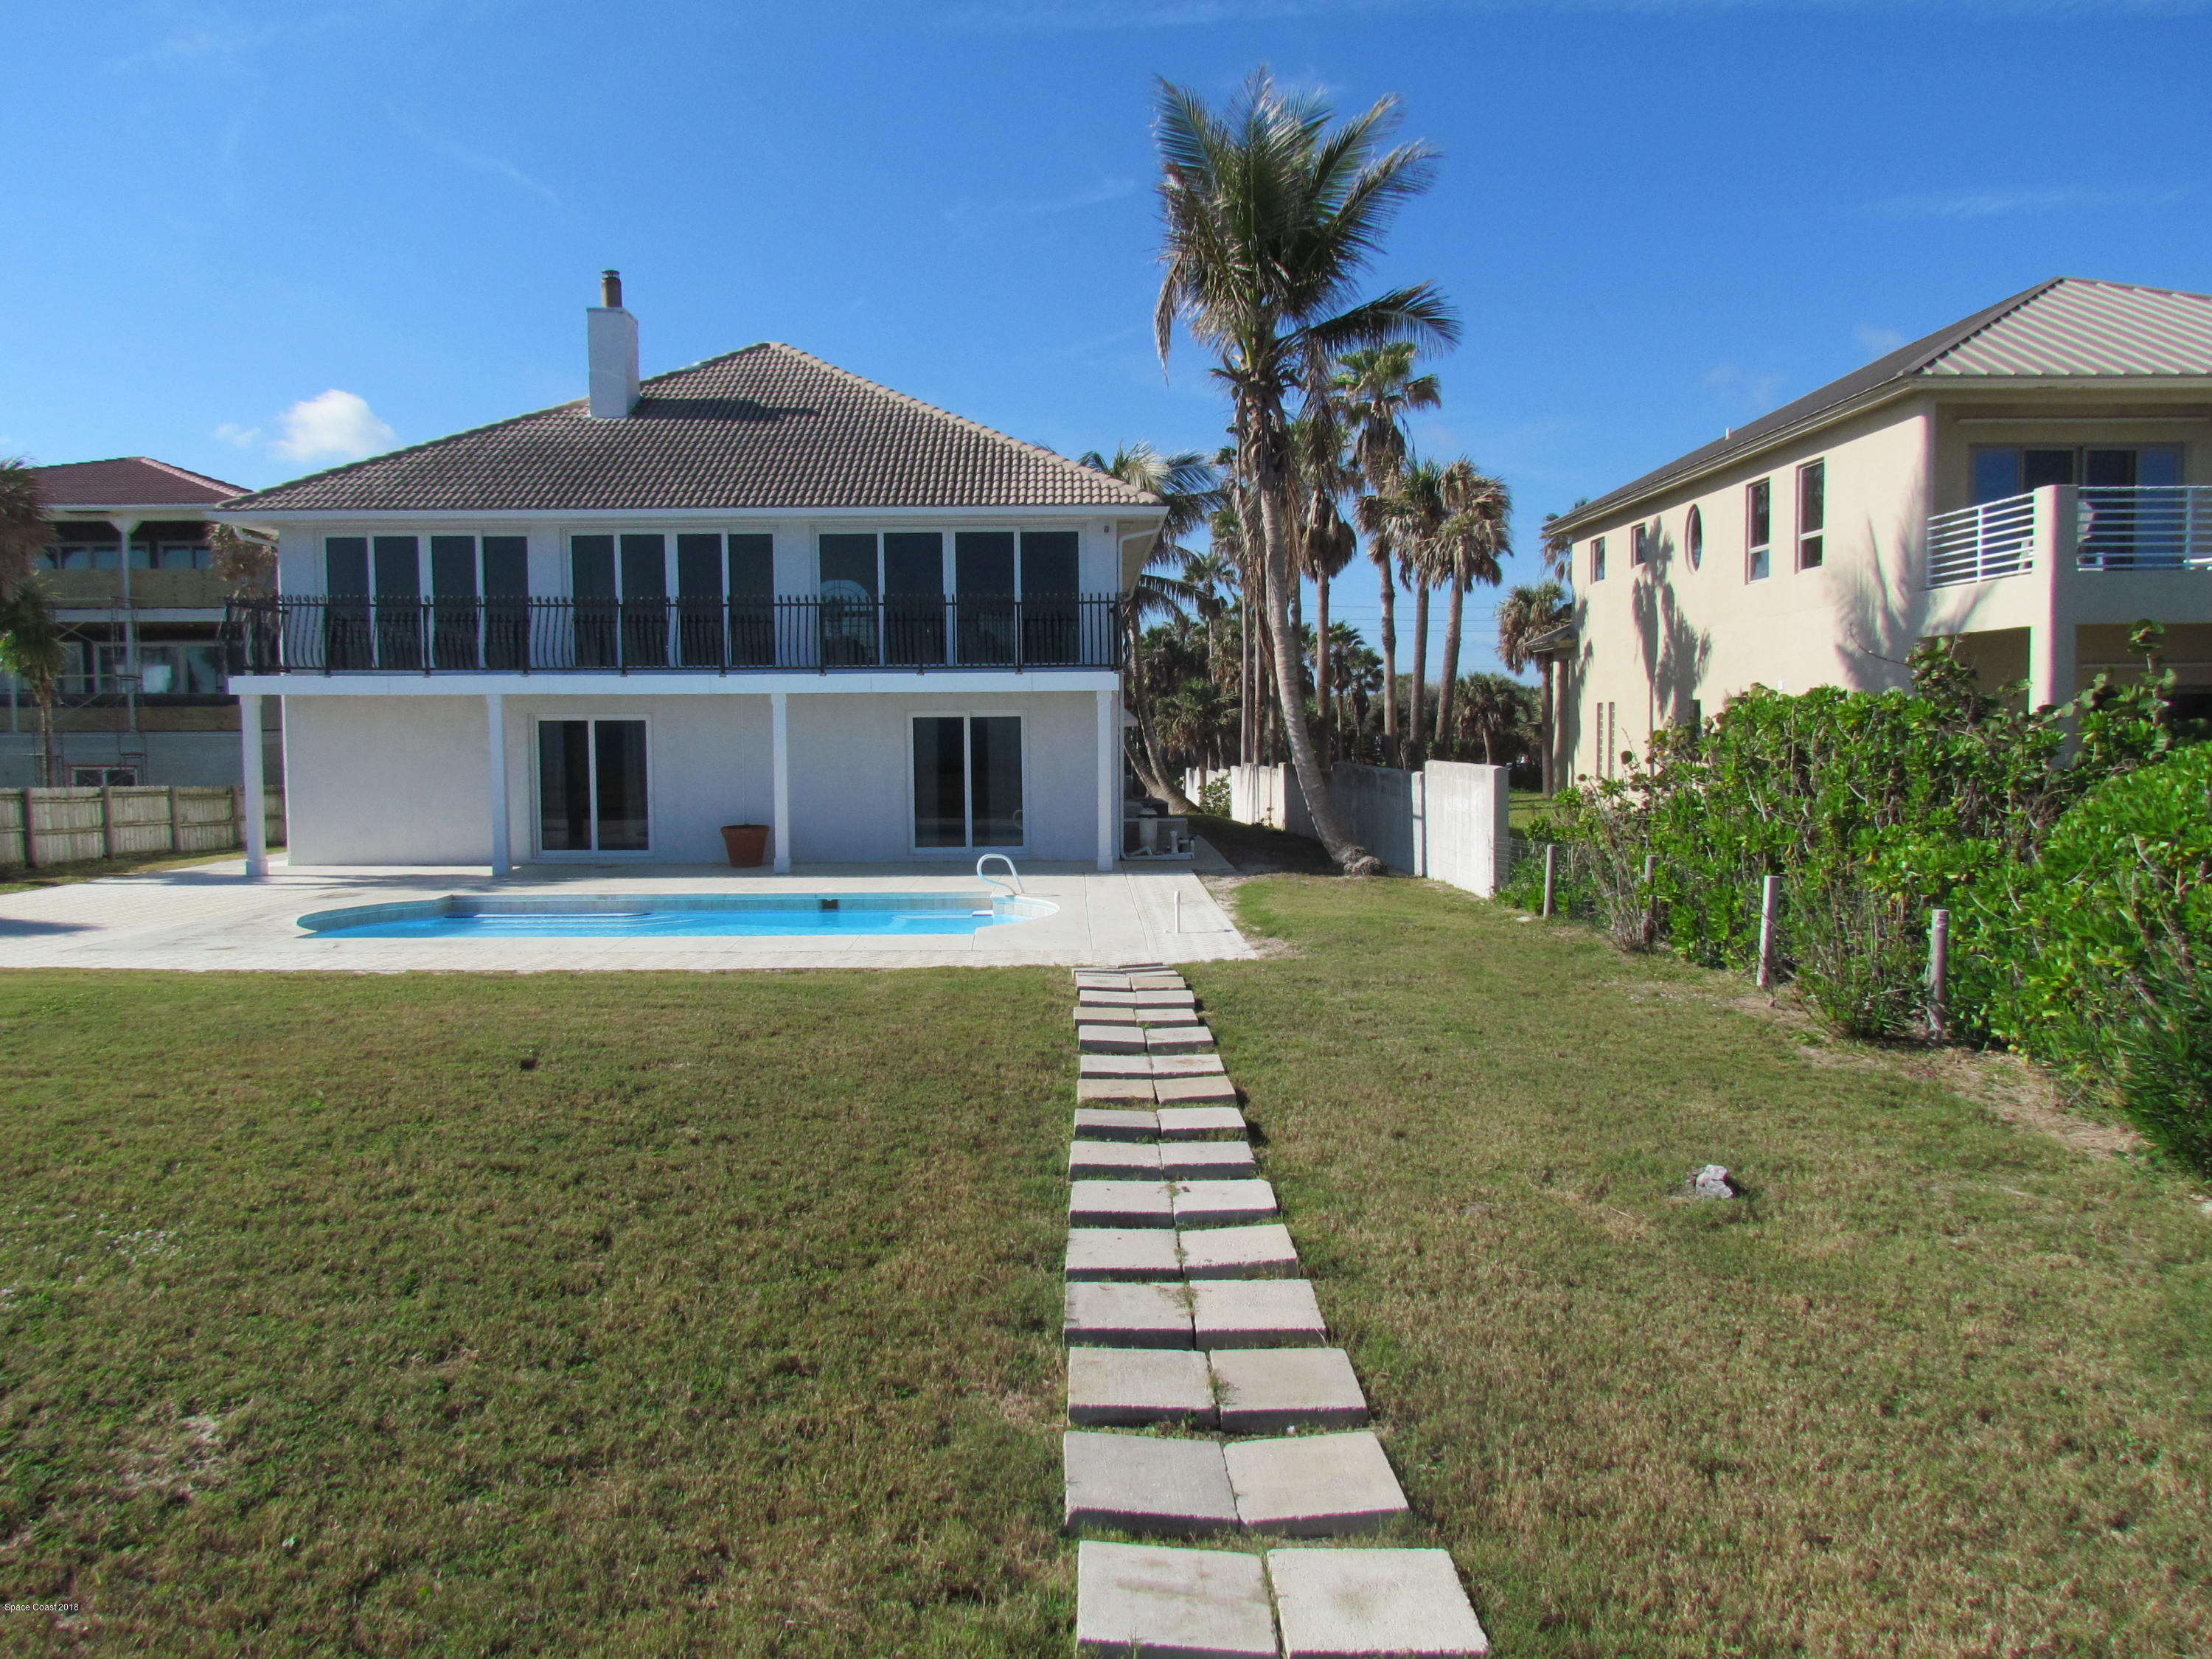 Additional photo for property listing at 5995 S A1a 5995 S A1a Melbourne Beach, Florida 32951 United States